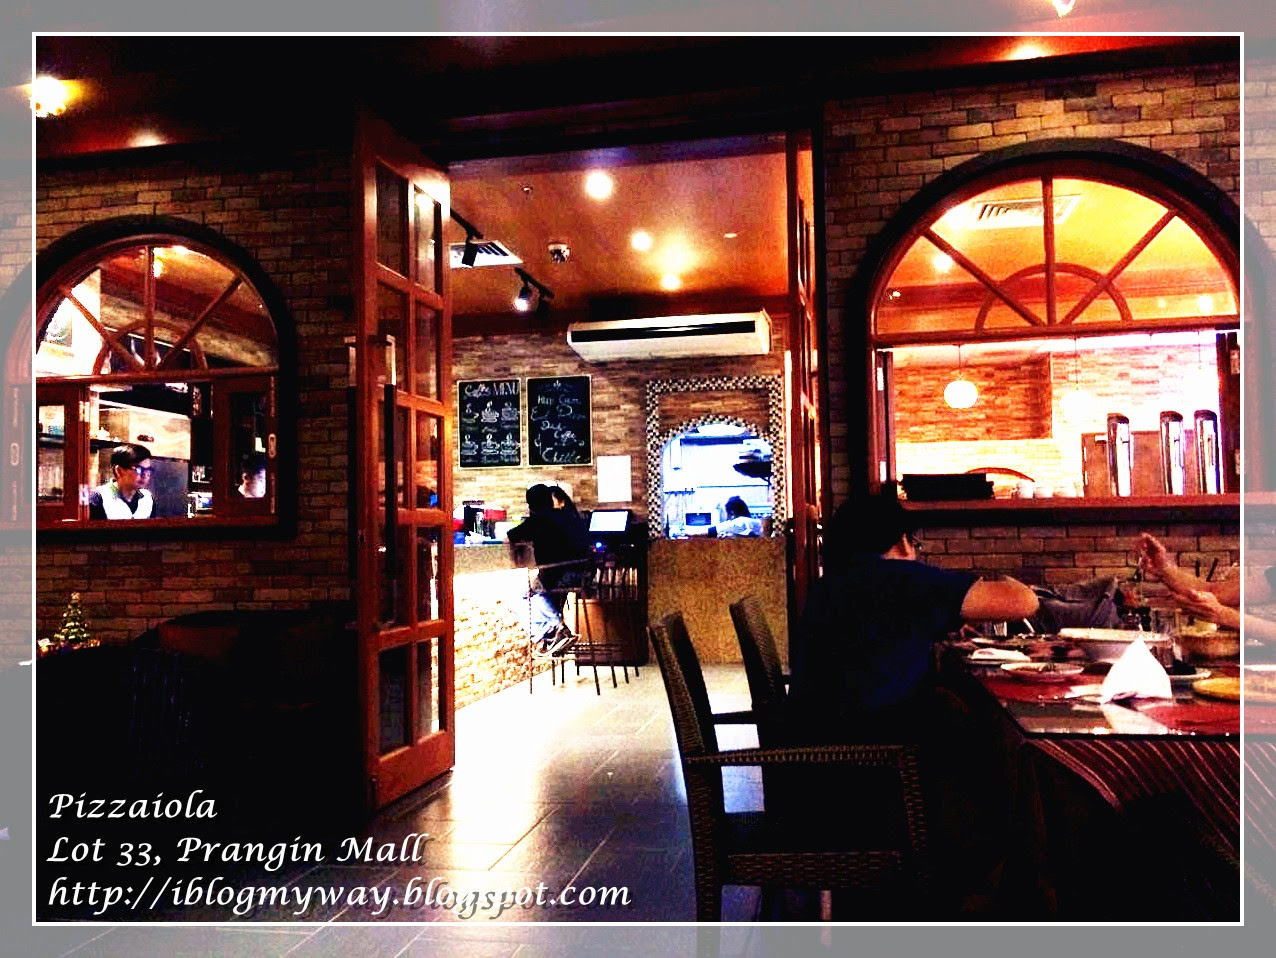 Pizzaiola Lot 33 Prangin Mall, Penang